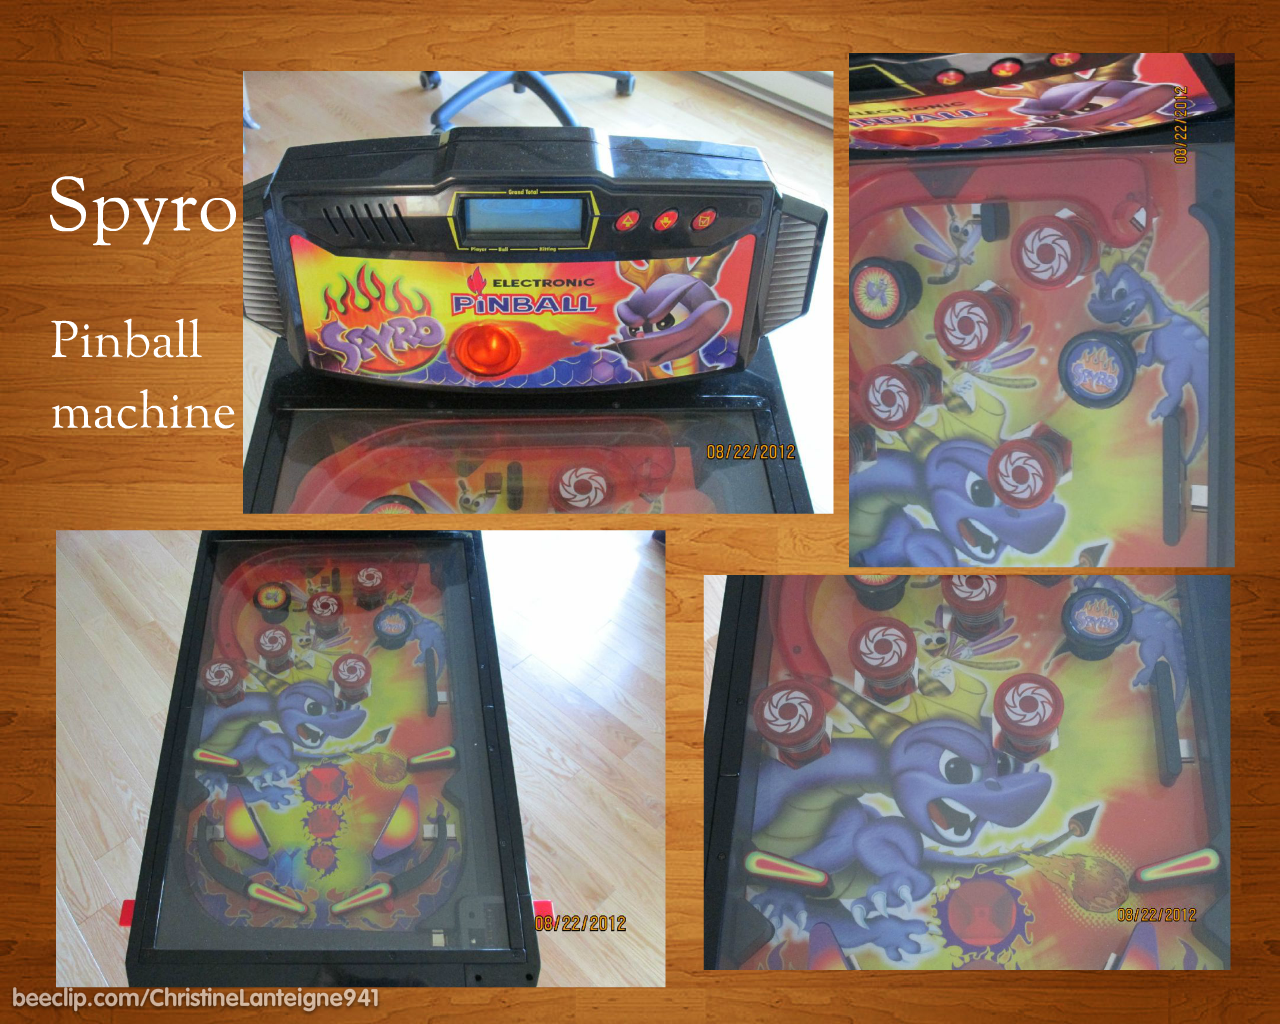 Ngarkat Images: Reviewing the Sony Tablet S - Part 2 Gaming |Pinball Top View